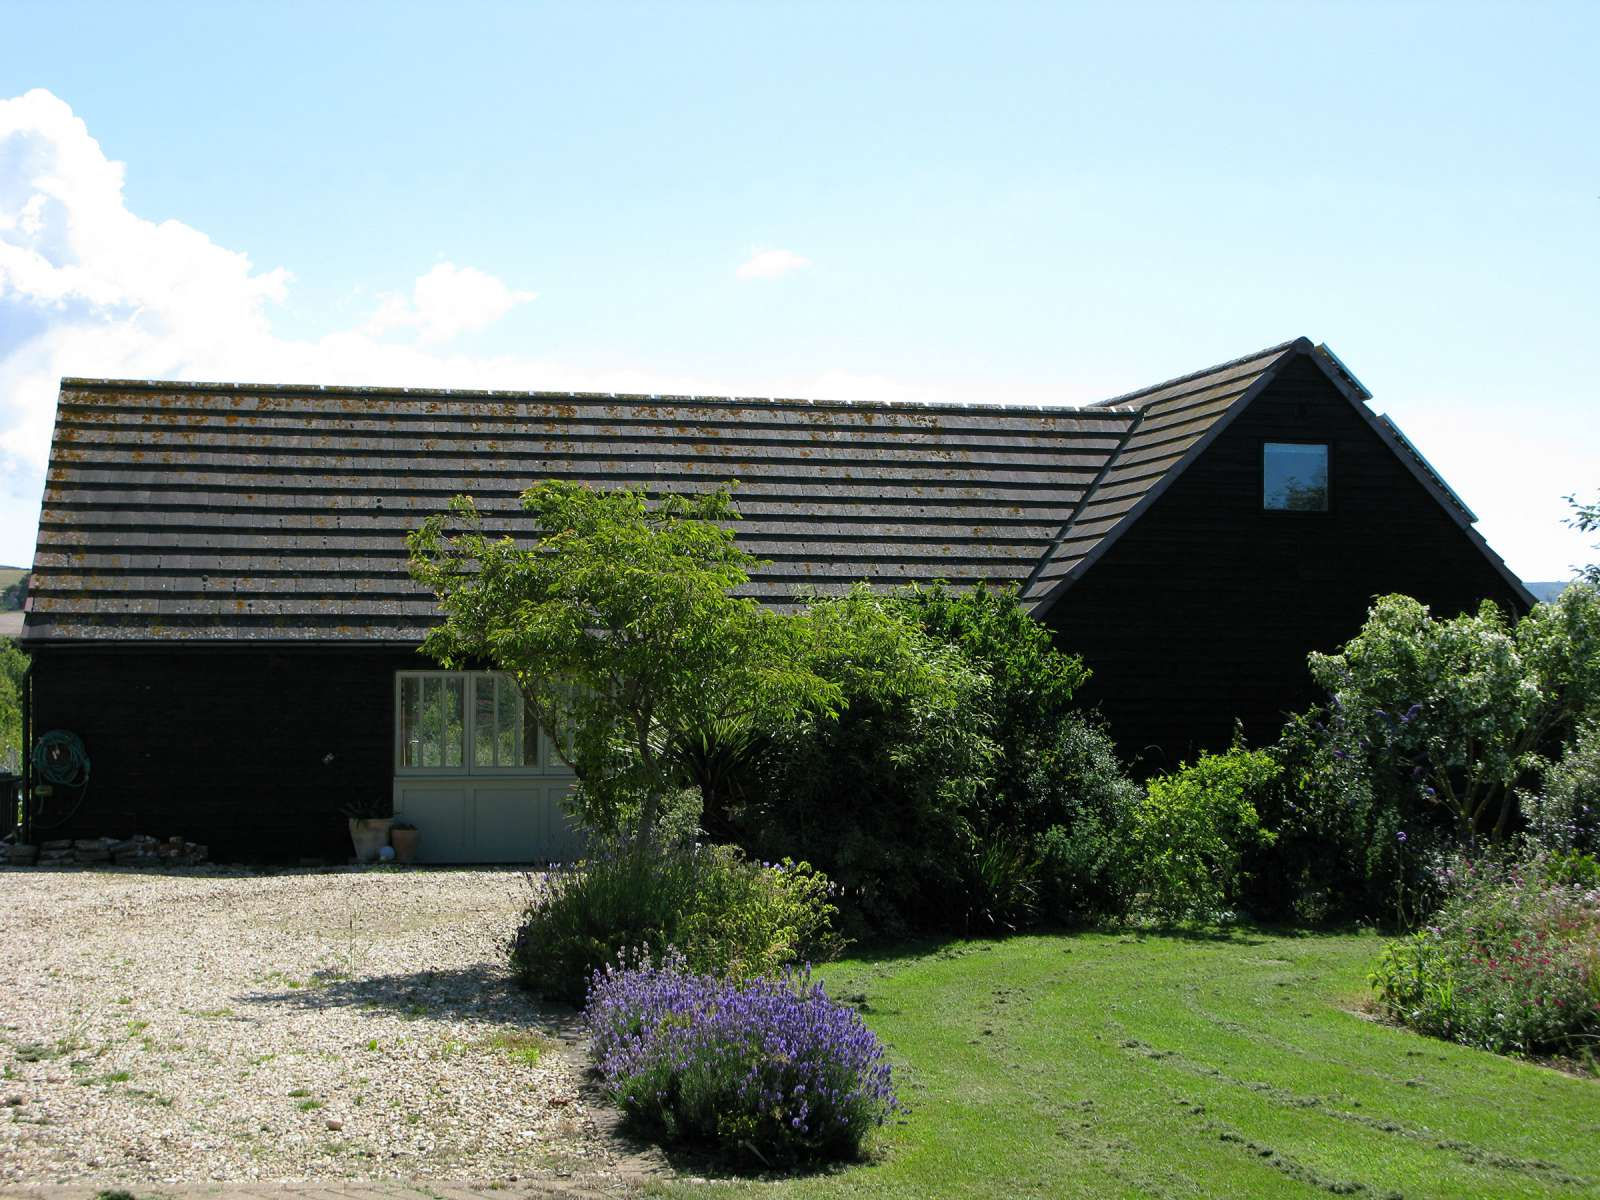 Holiday rental Cottage in Shorwell - The west facing side of The Little Barn